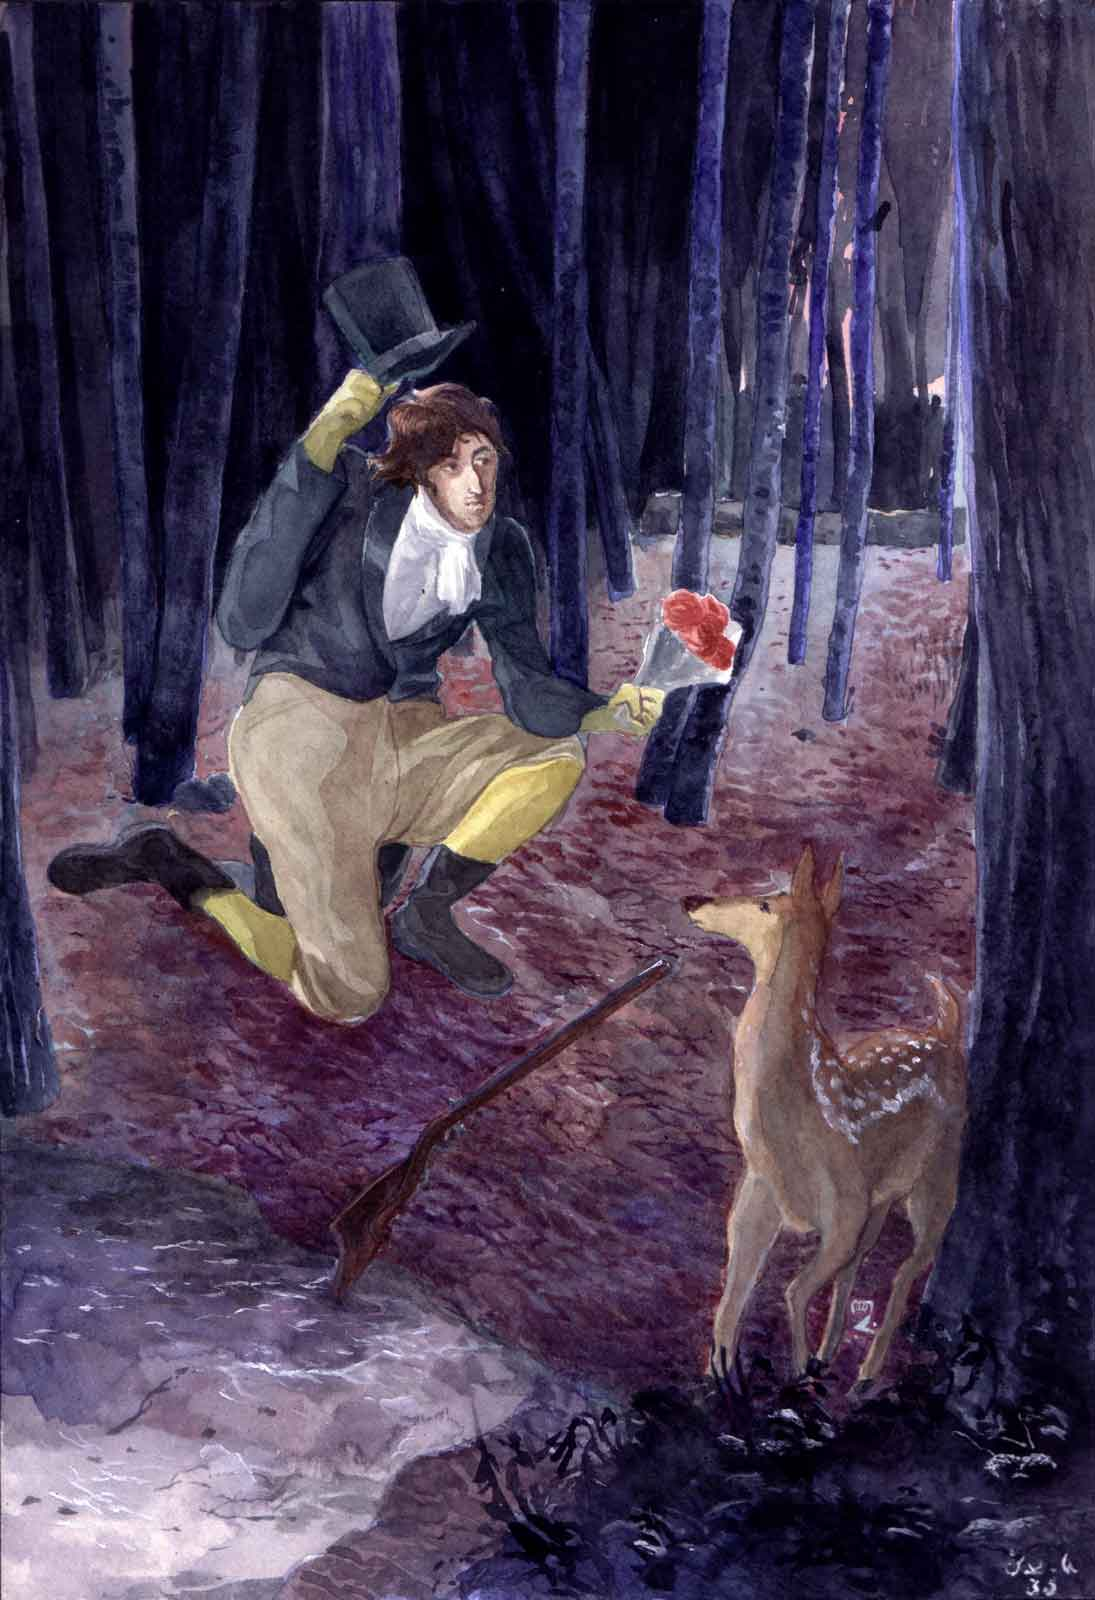 A hunting gentleman in the early 1800s hands over a flower bouquet to a deer in a frozen forest at nightfall.